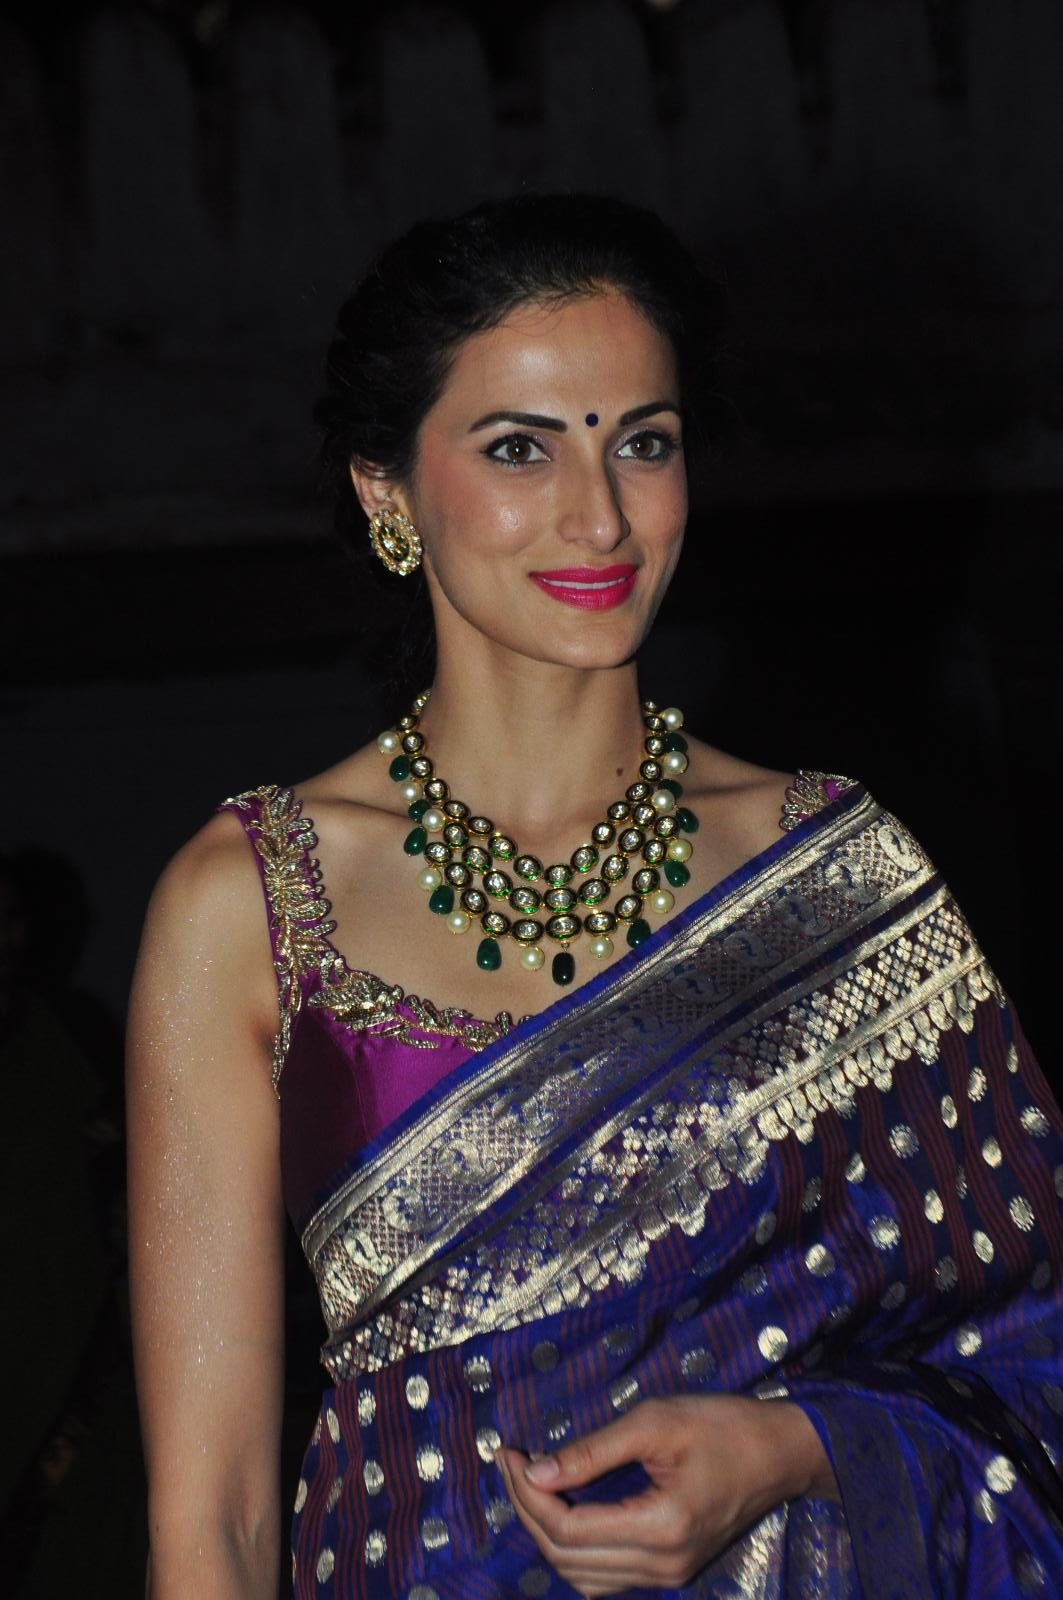 shilpa reddy Brand New Photo Stills of Beautiful Shilpa Reddy | Fashion | Modelling Shilpa Reddy 140 e1485253415697